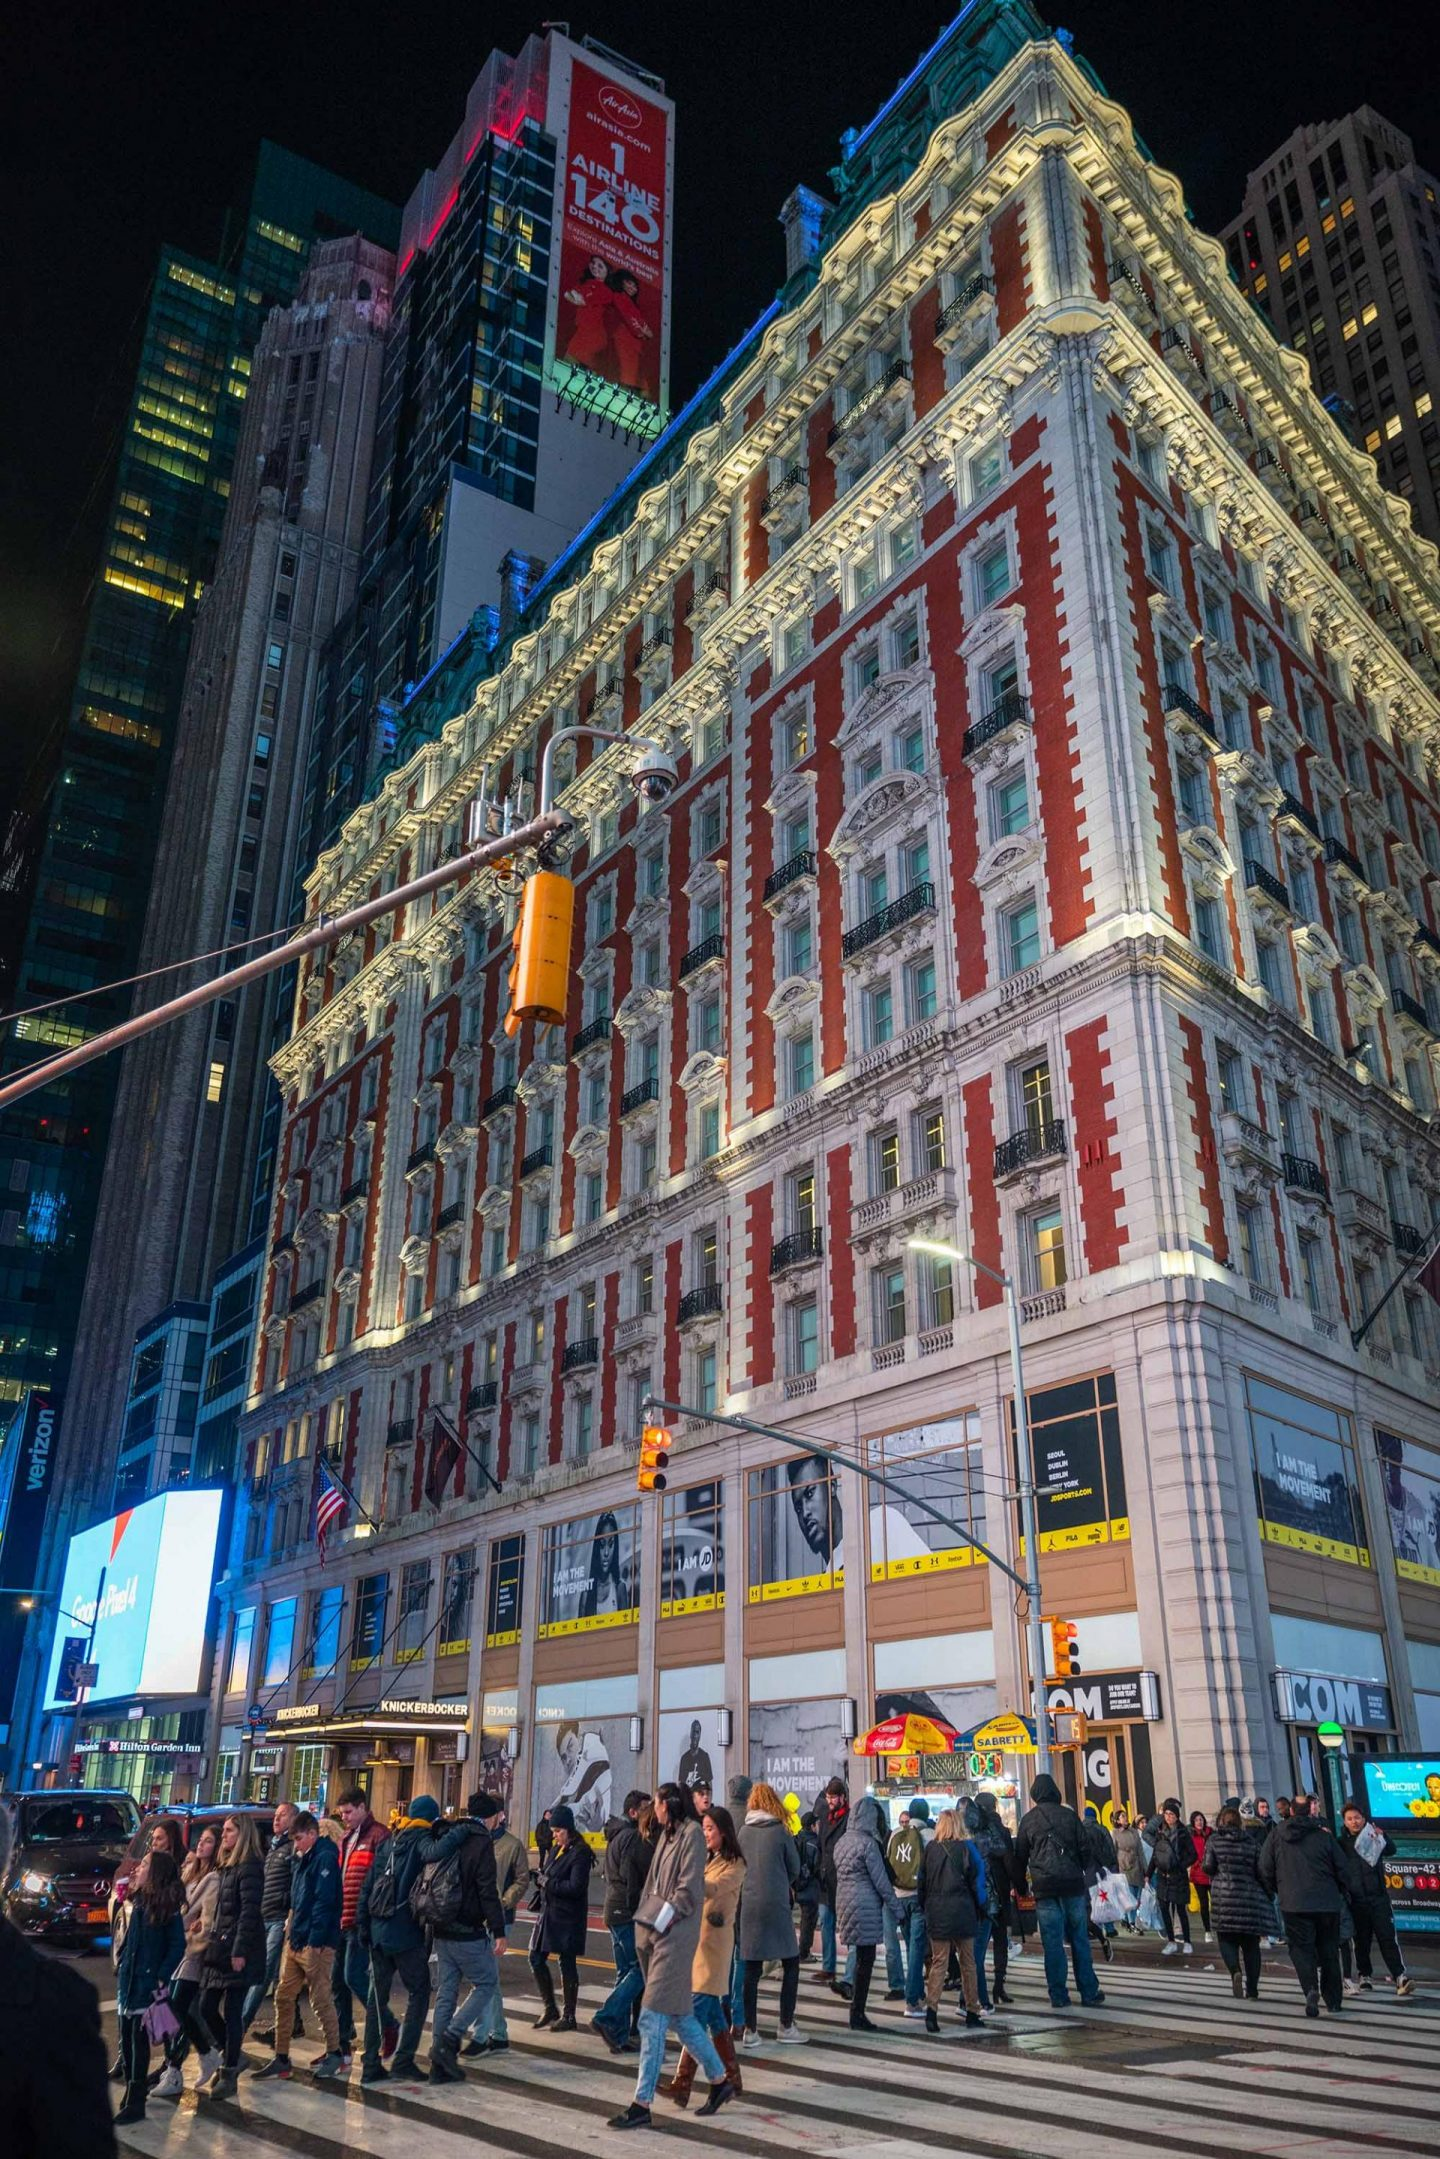 The Knickerbocker Hotel in Times Square.